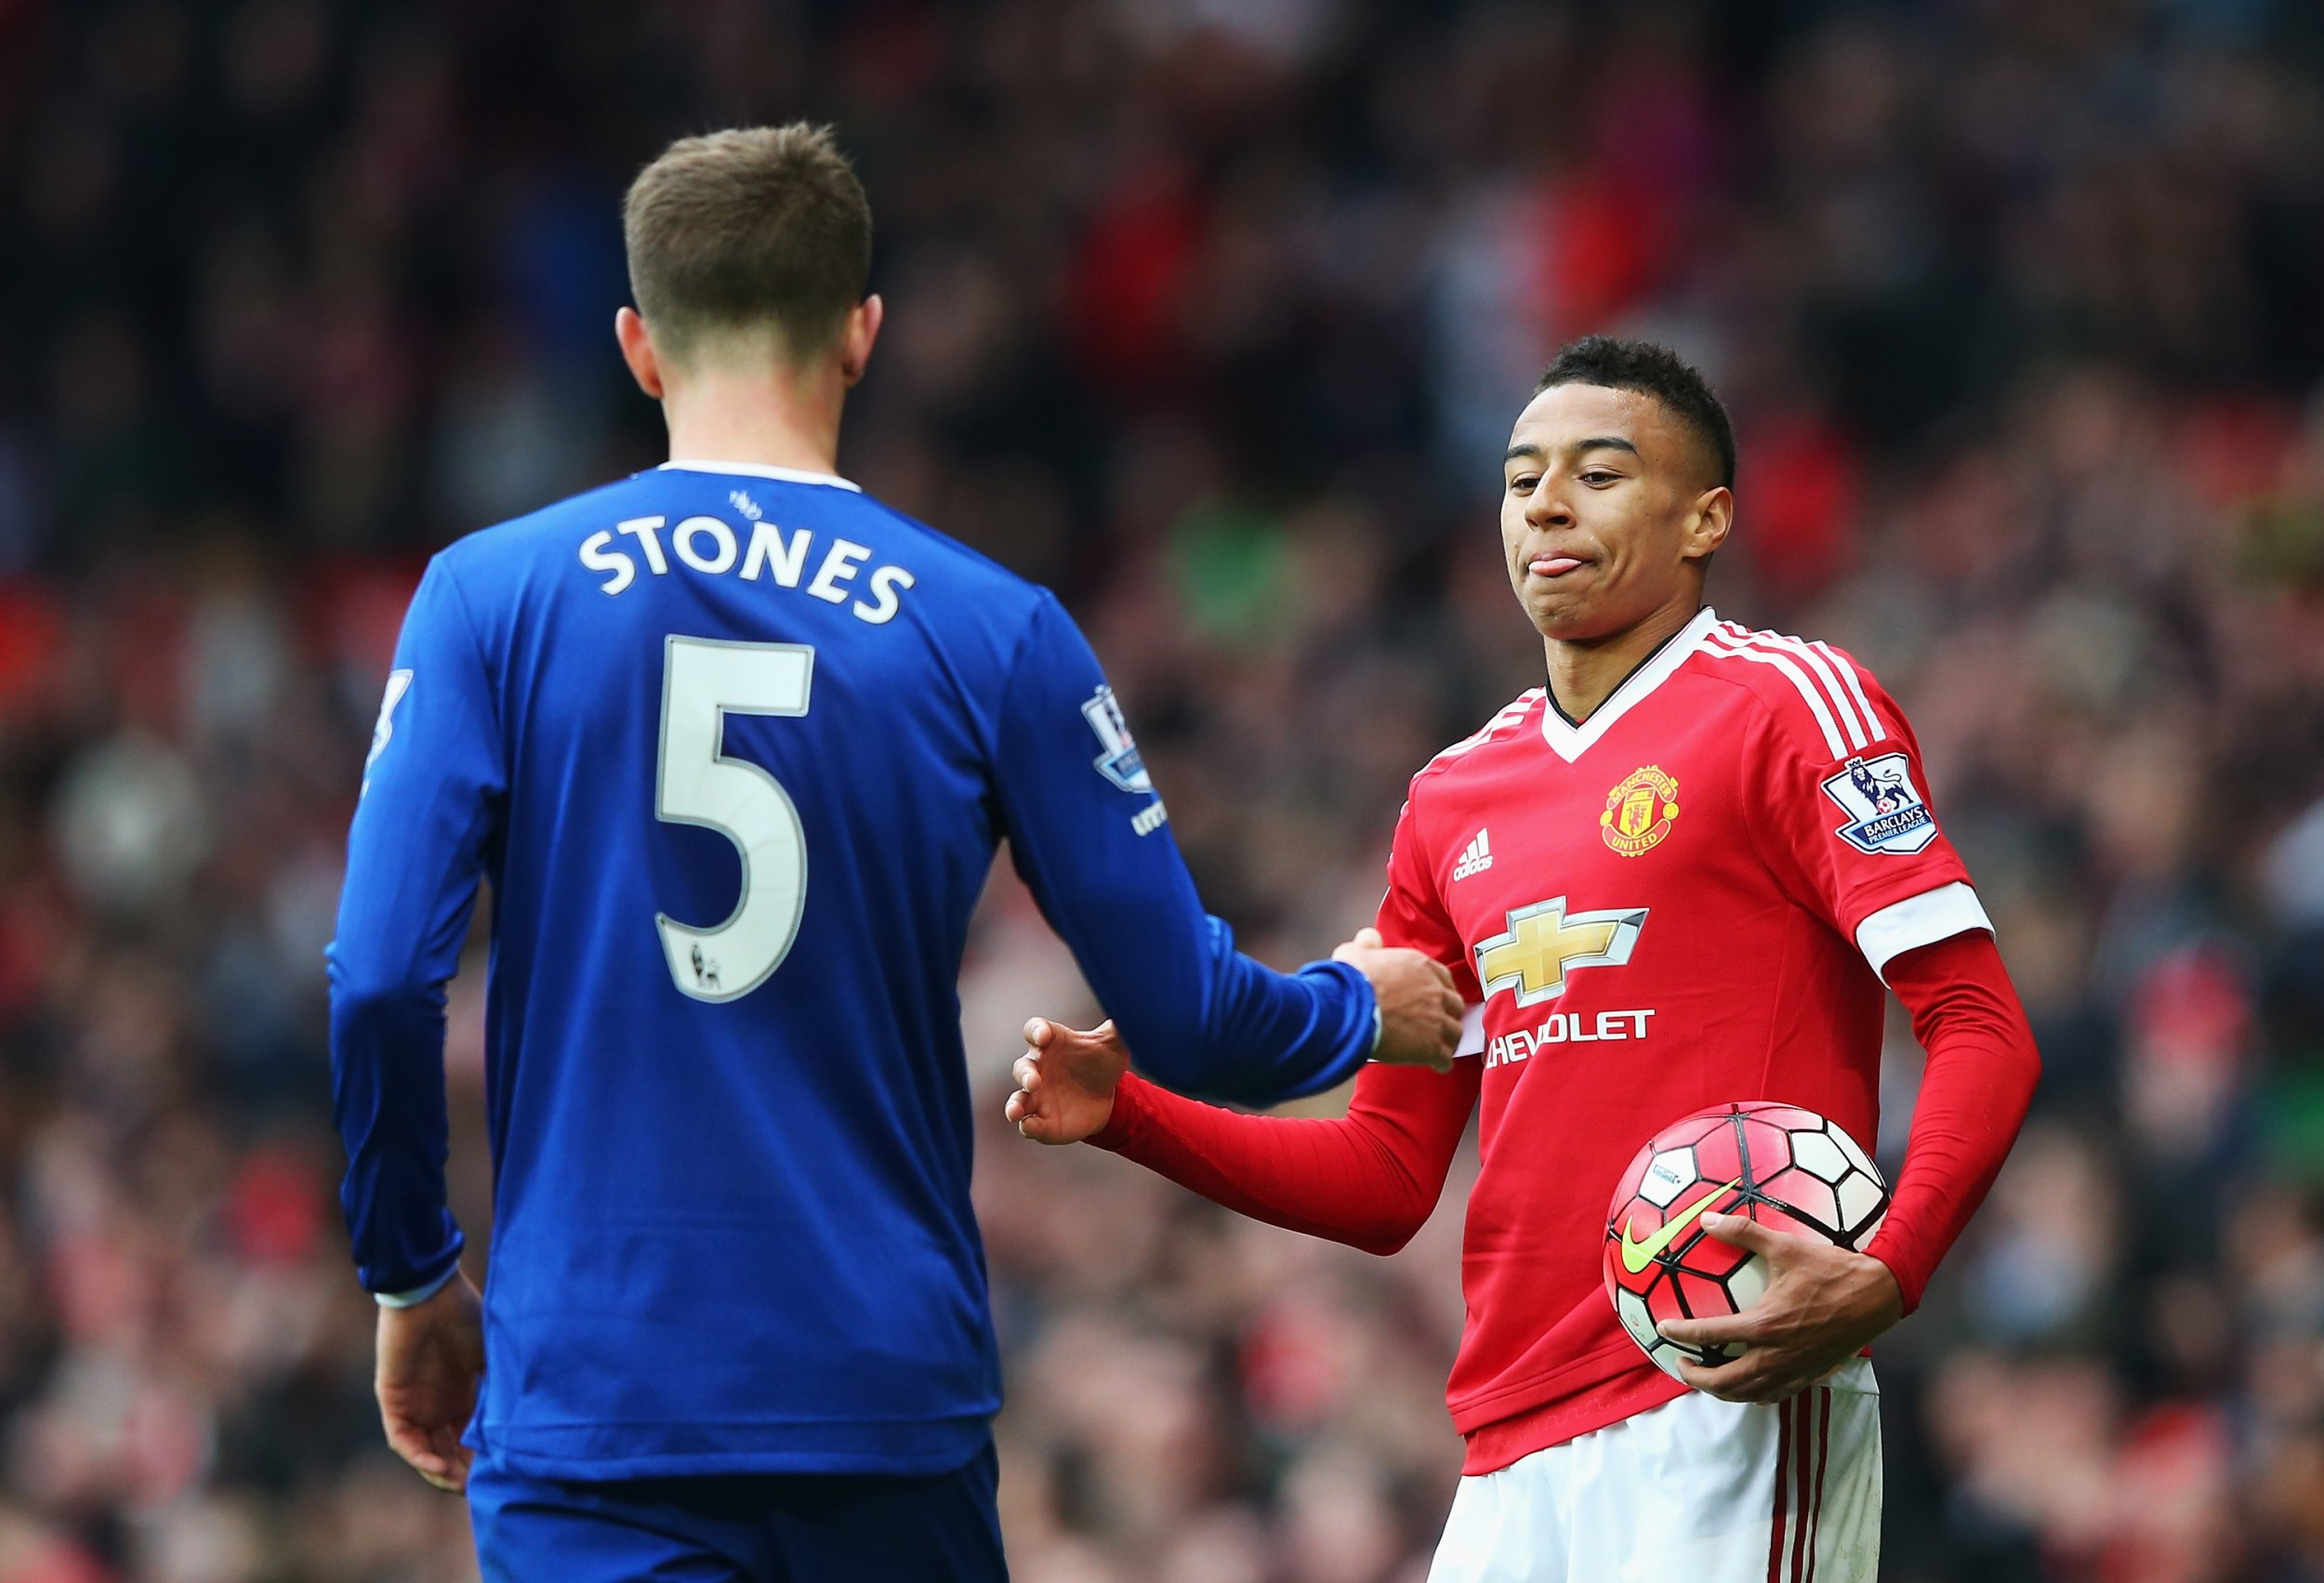 John Stones, left, is a reported Manchester United target.